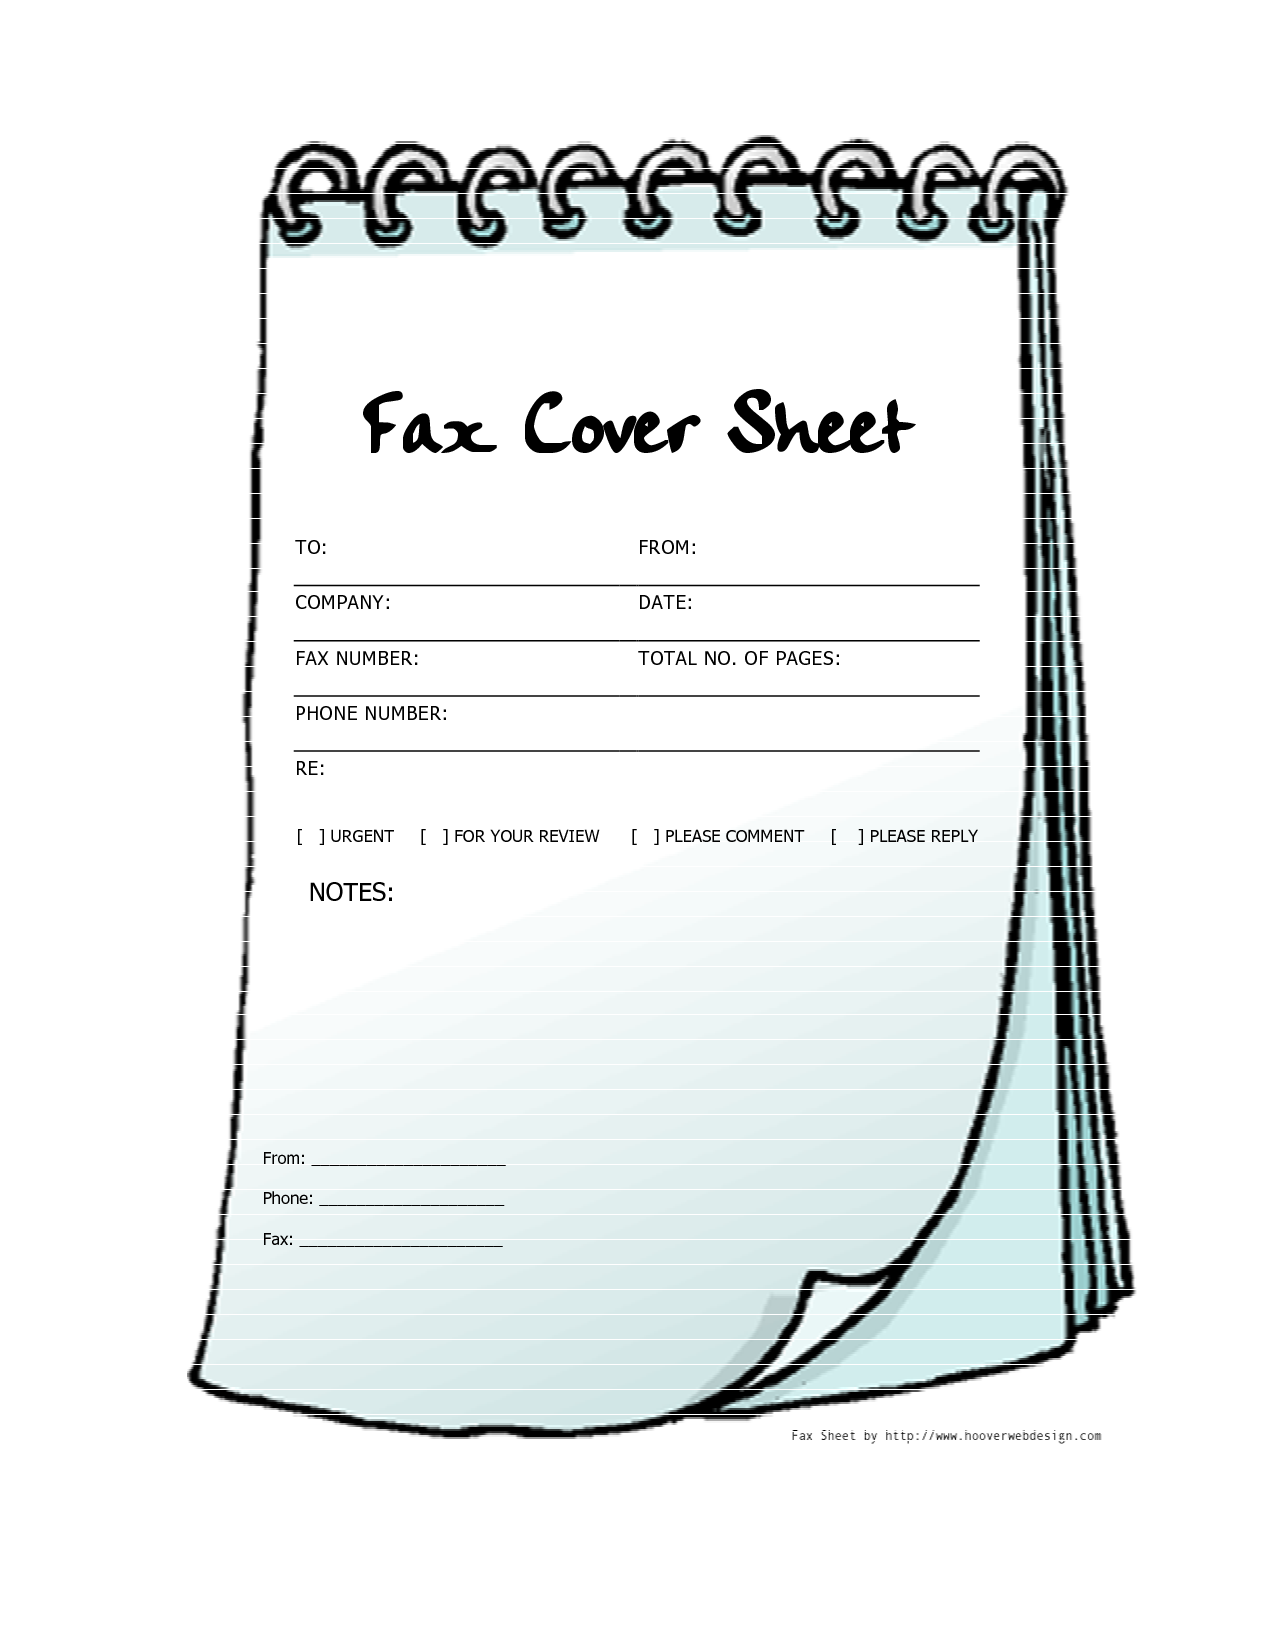 image regarding Printable Cover Sheet identify no cost fax go over sheet Totally free Printable Fax Go over Sheet